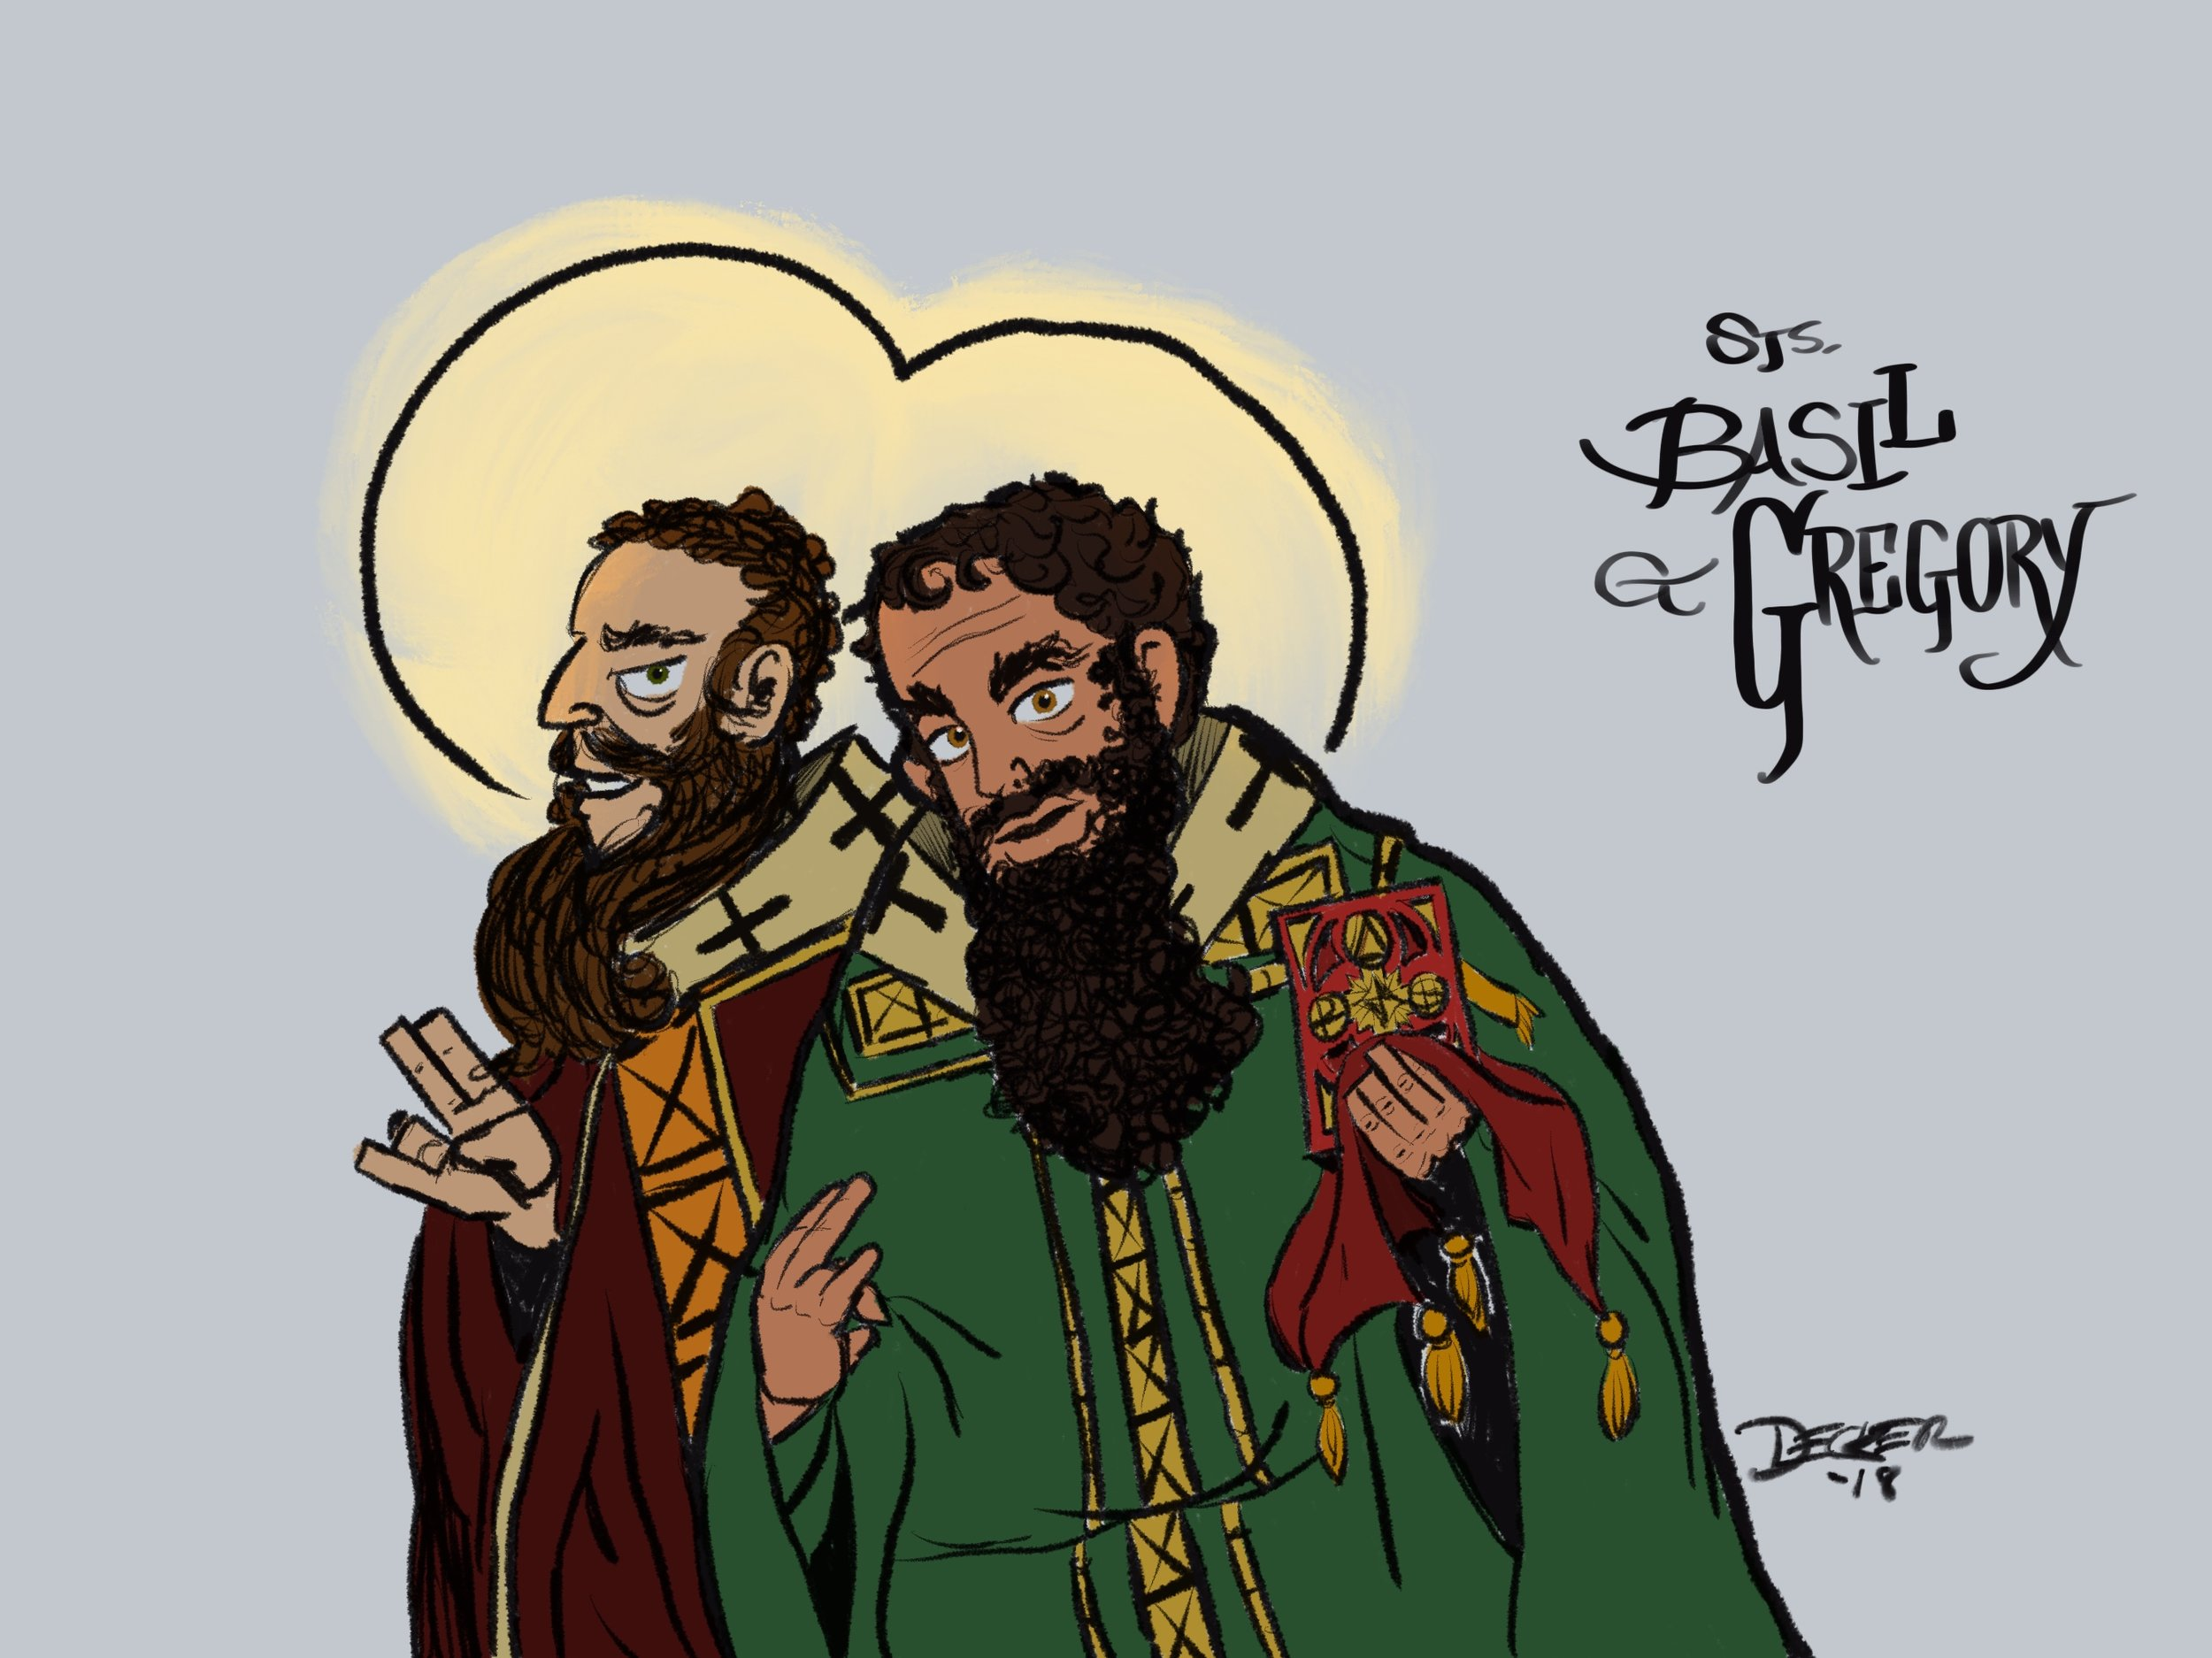 Saints Basil & Gregory